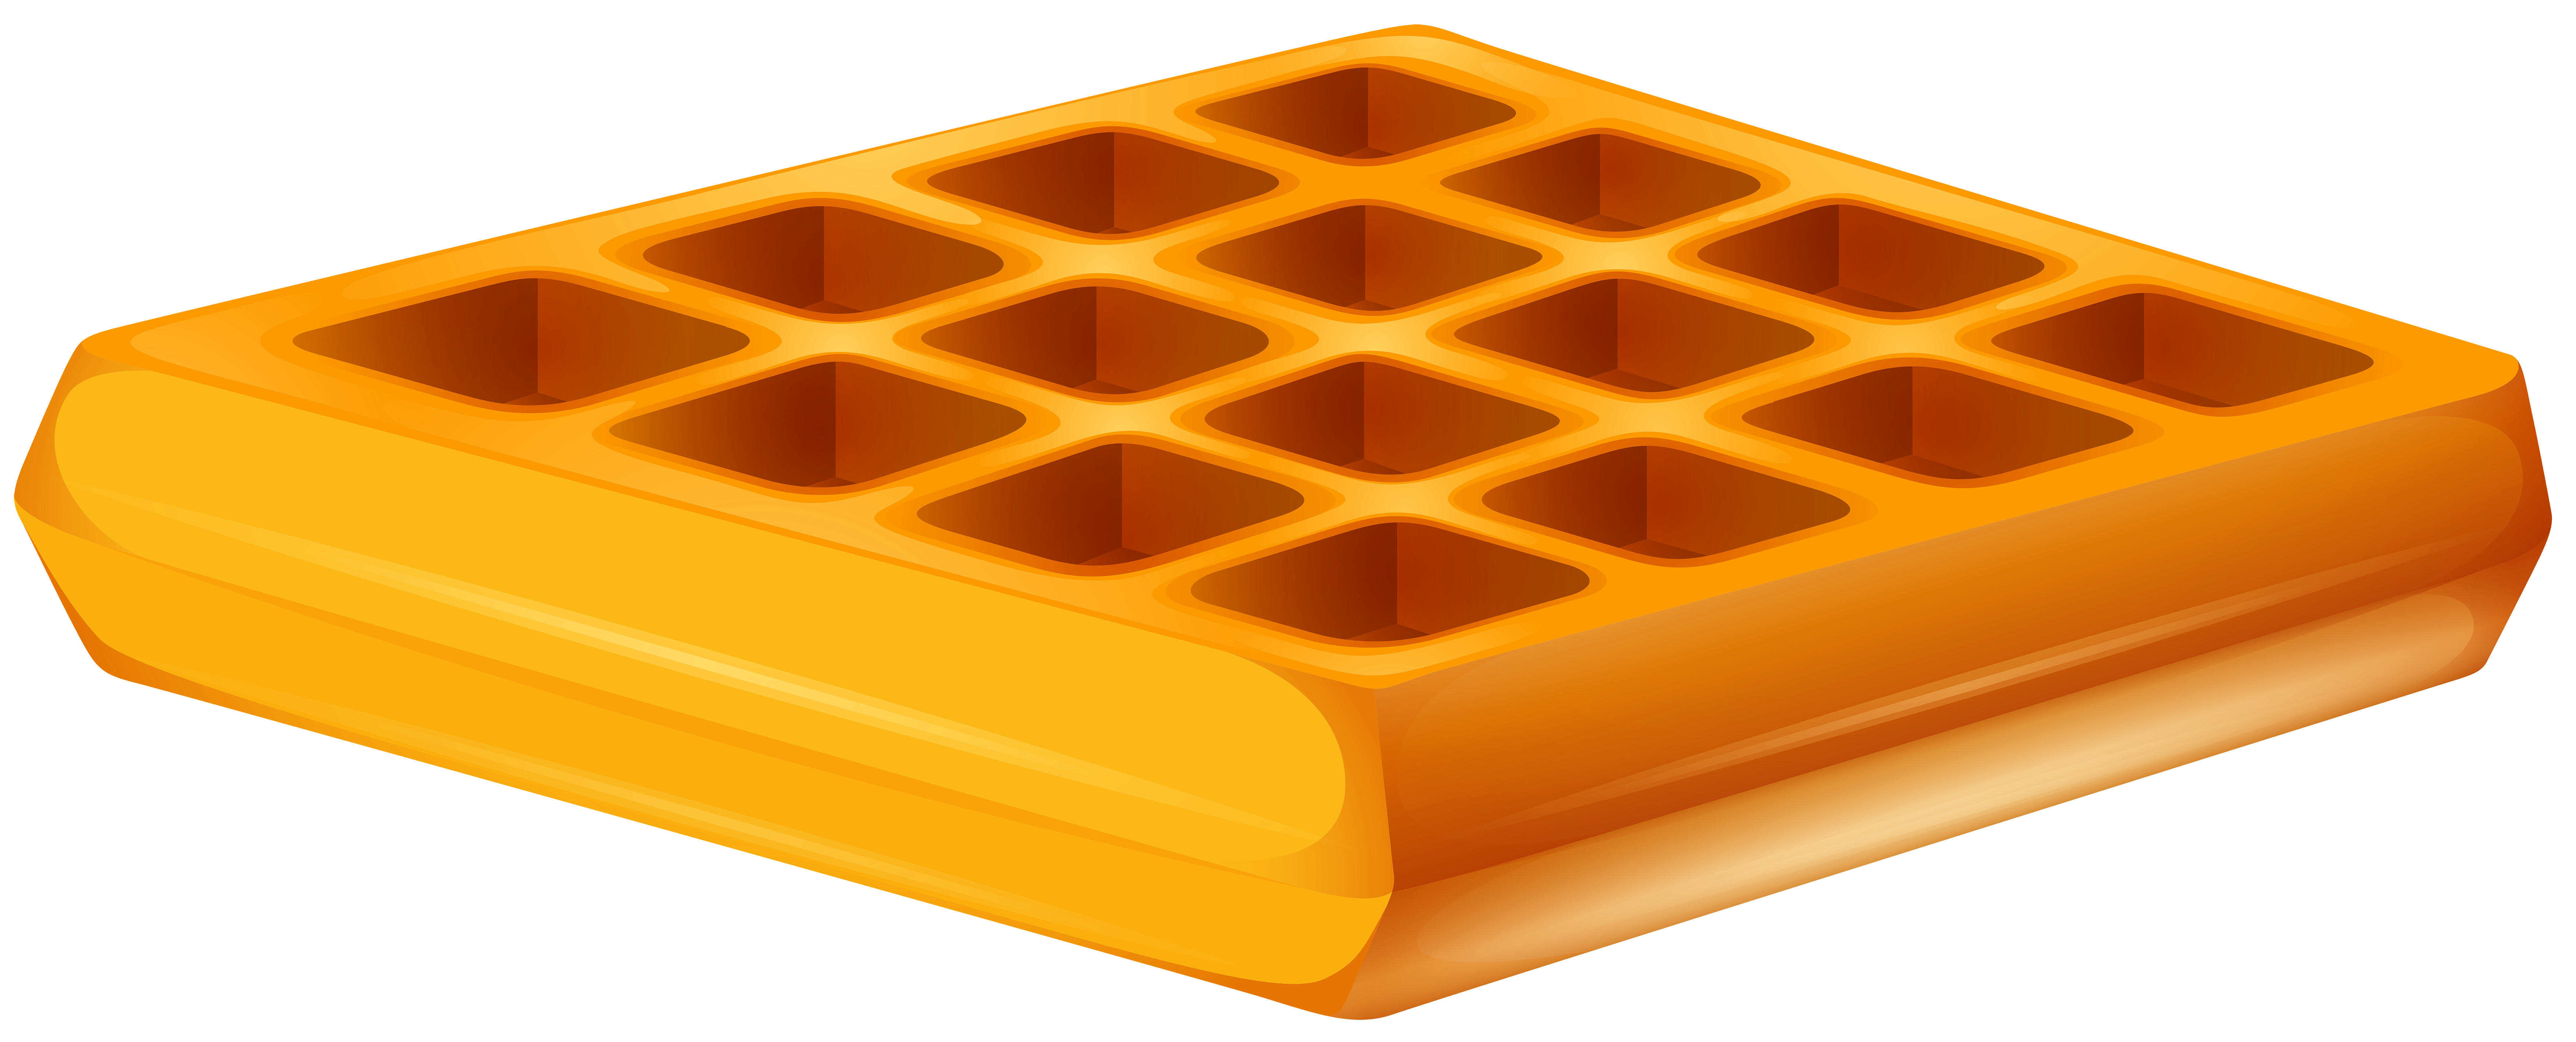 Waffle png clip art. Waffles transparent free clipart graphic free library